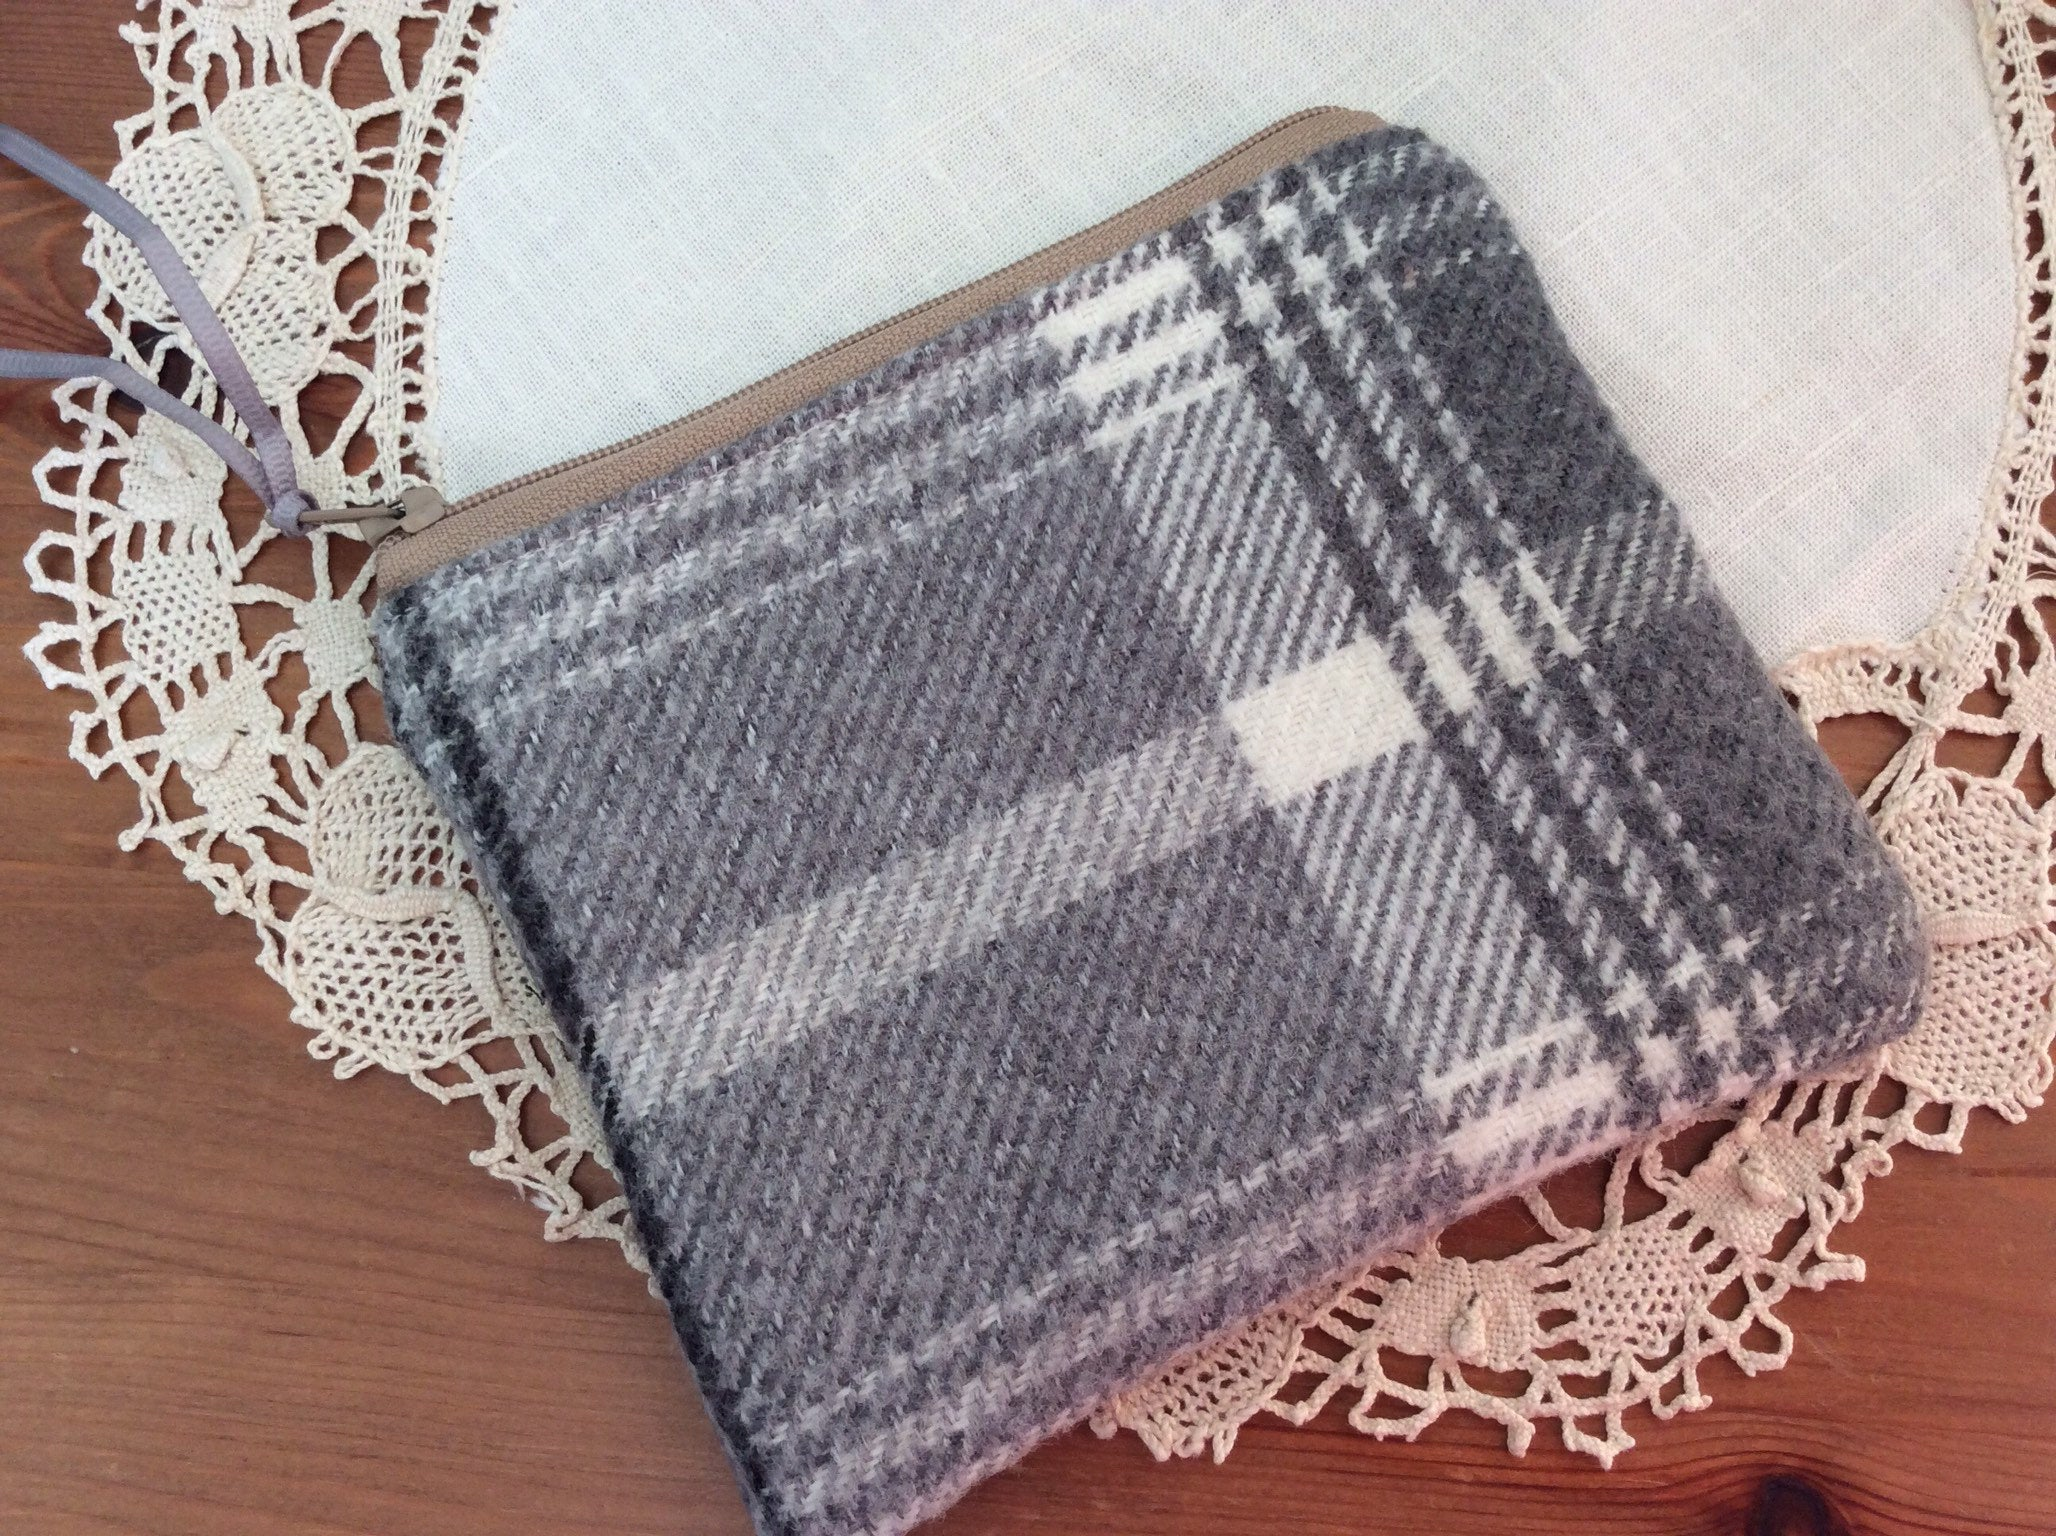 Zipped Purse - grey and beige